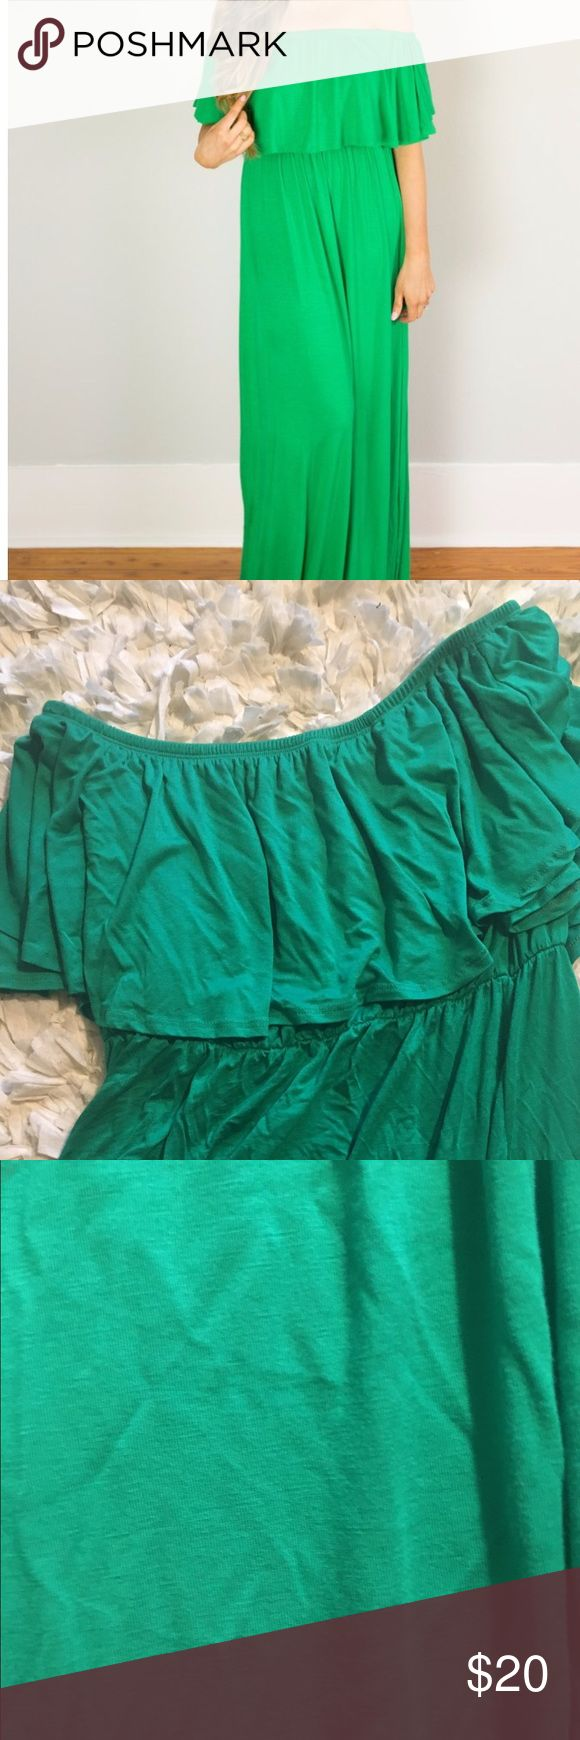 Green maxi dress Can be worn off shoulder or strapless, worn 1 time Dresses Maxi